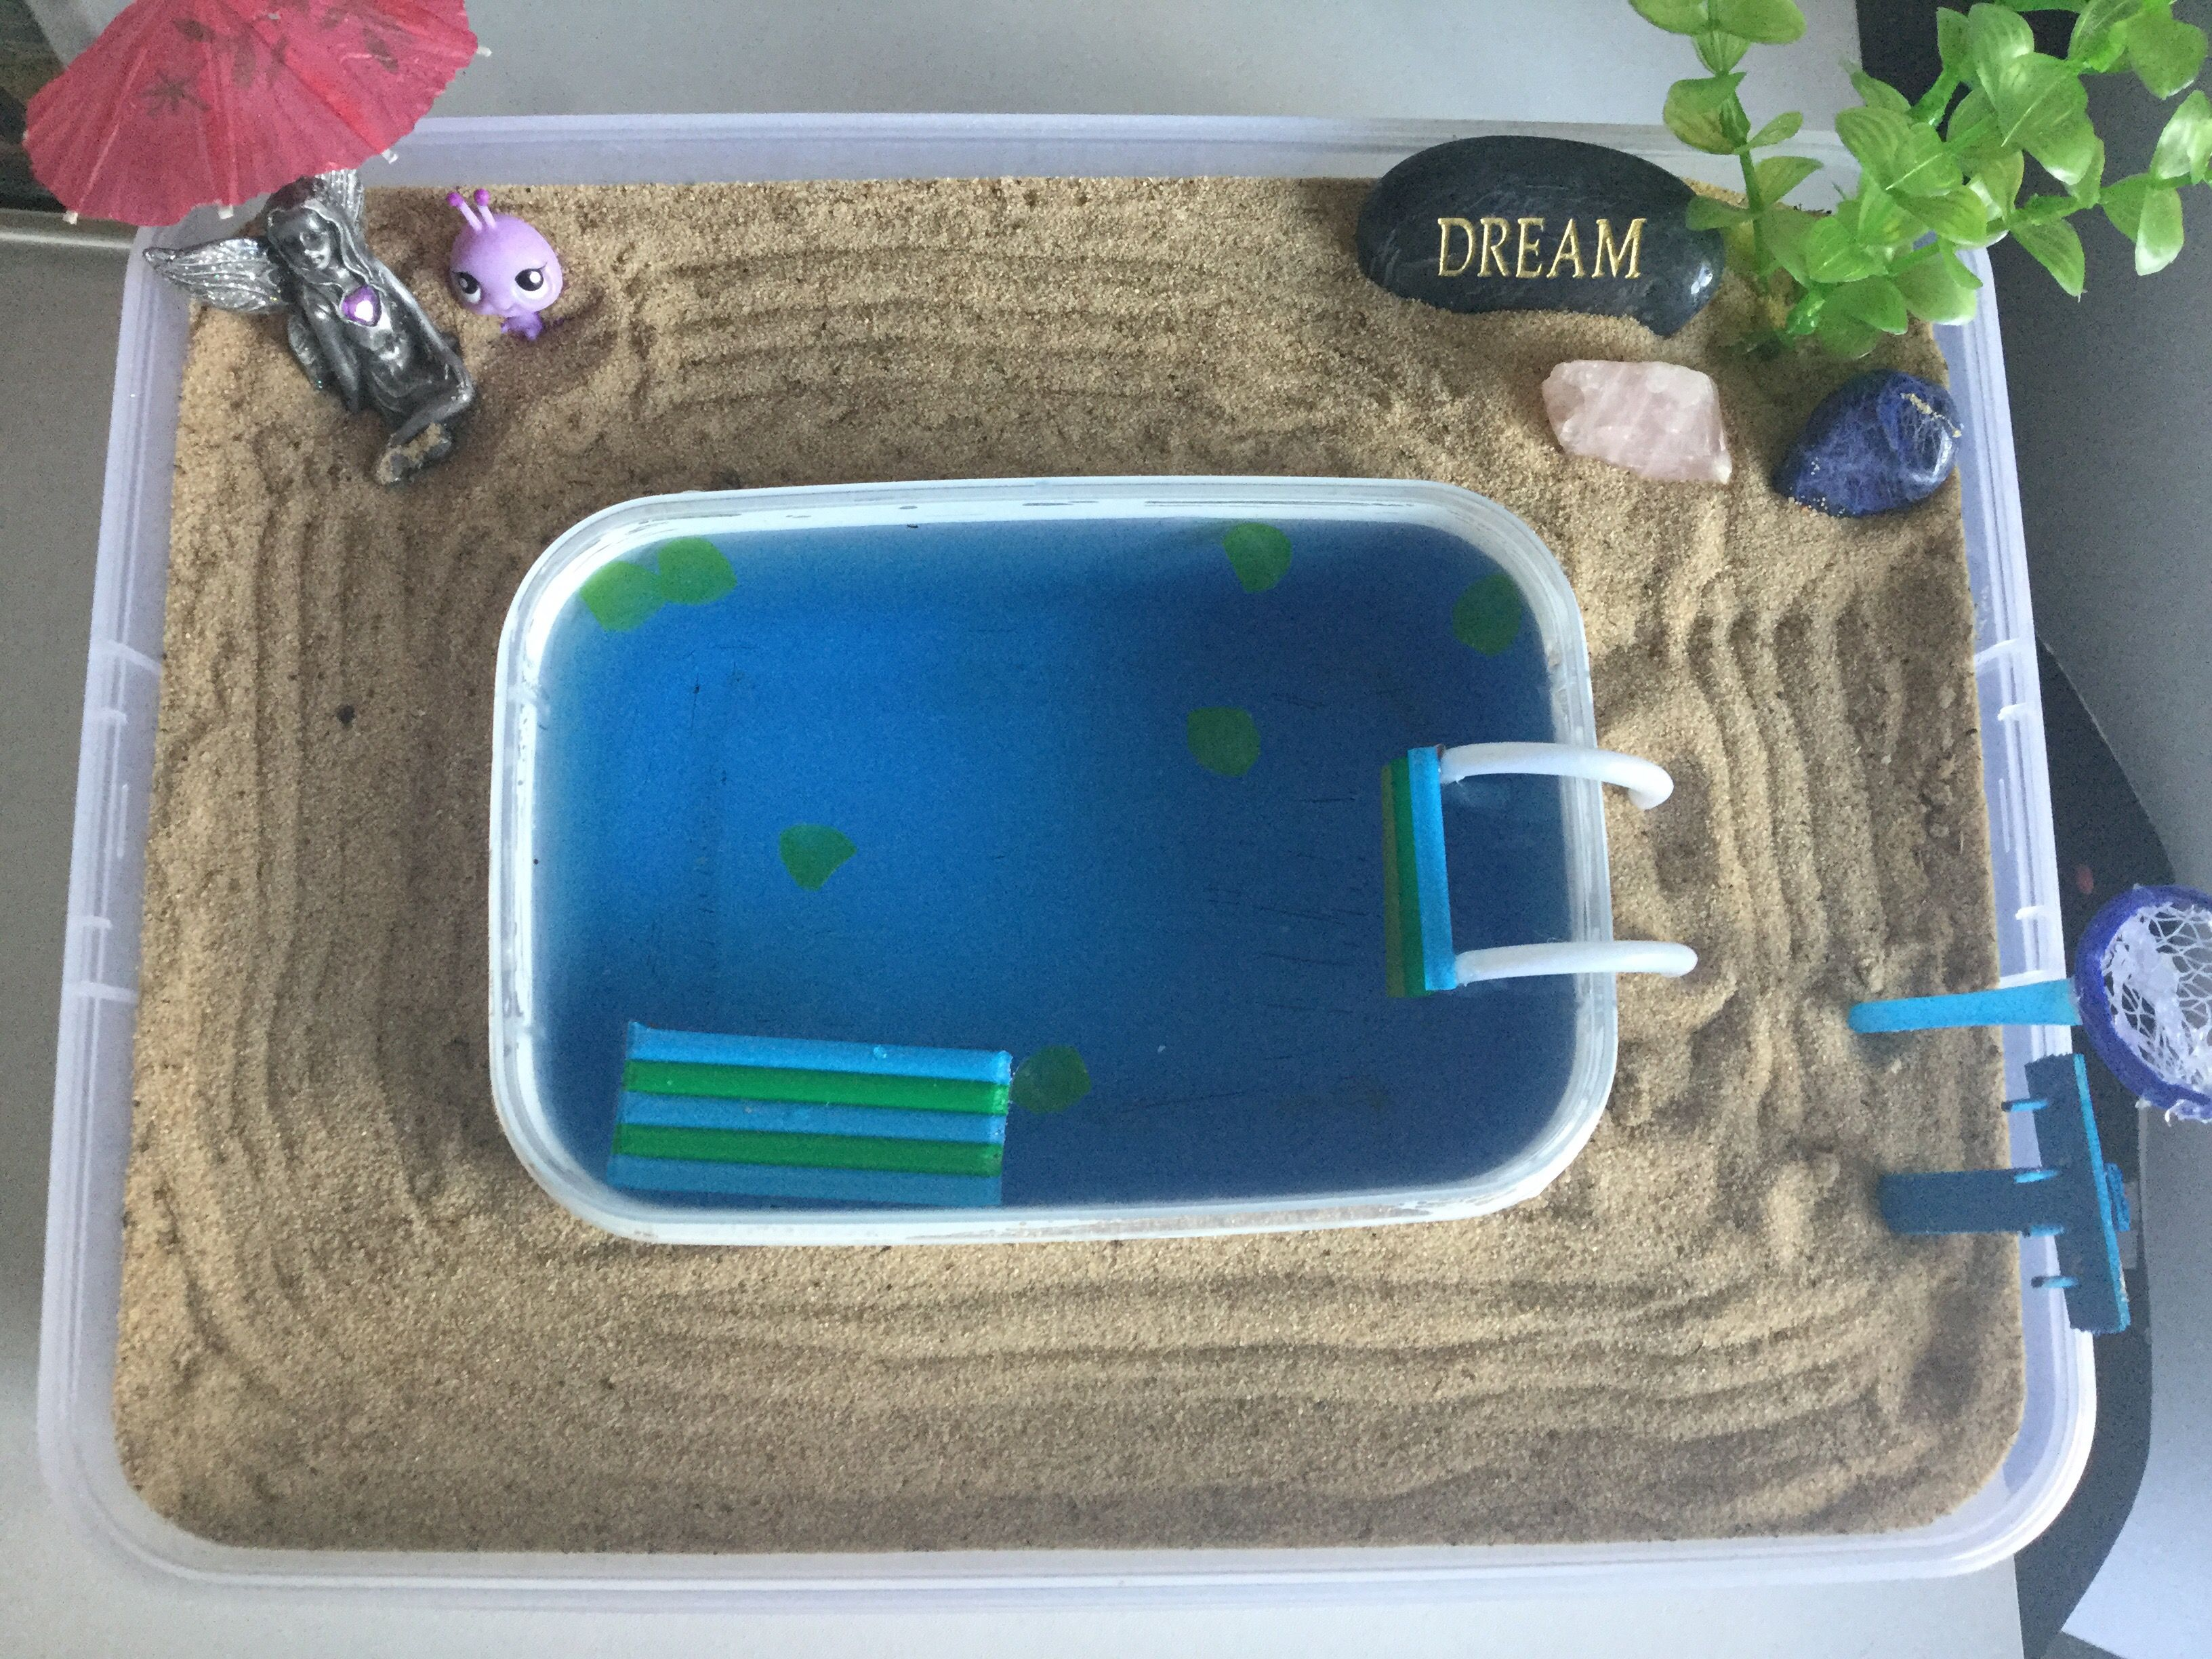 Diy zen garden with pool mini rake and net to catch leaves i made diy zen garden with pool mini rake and net to catch leaves i made solutioingenieria